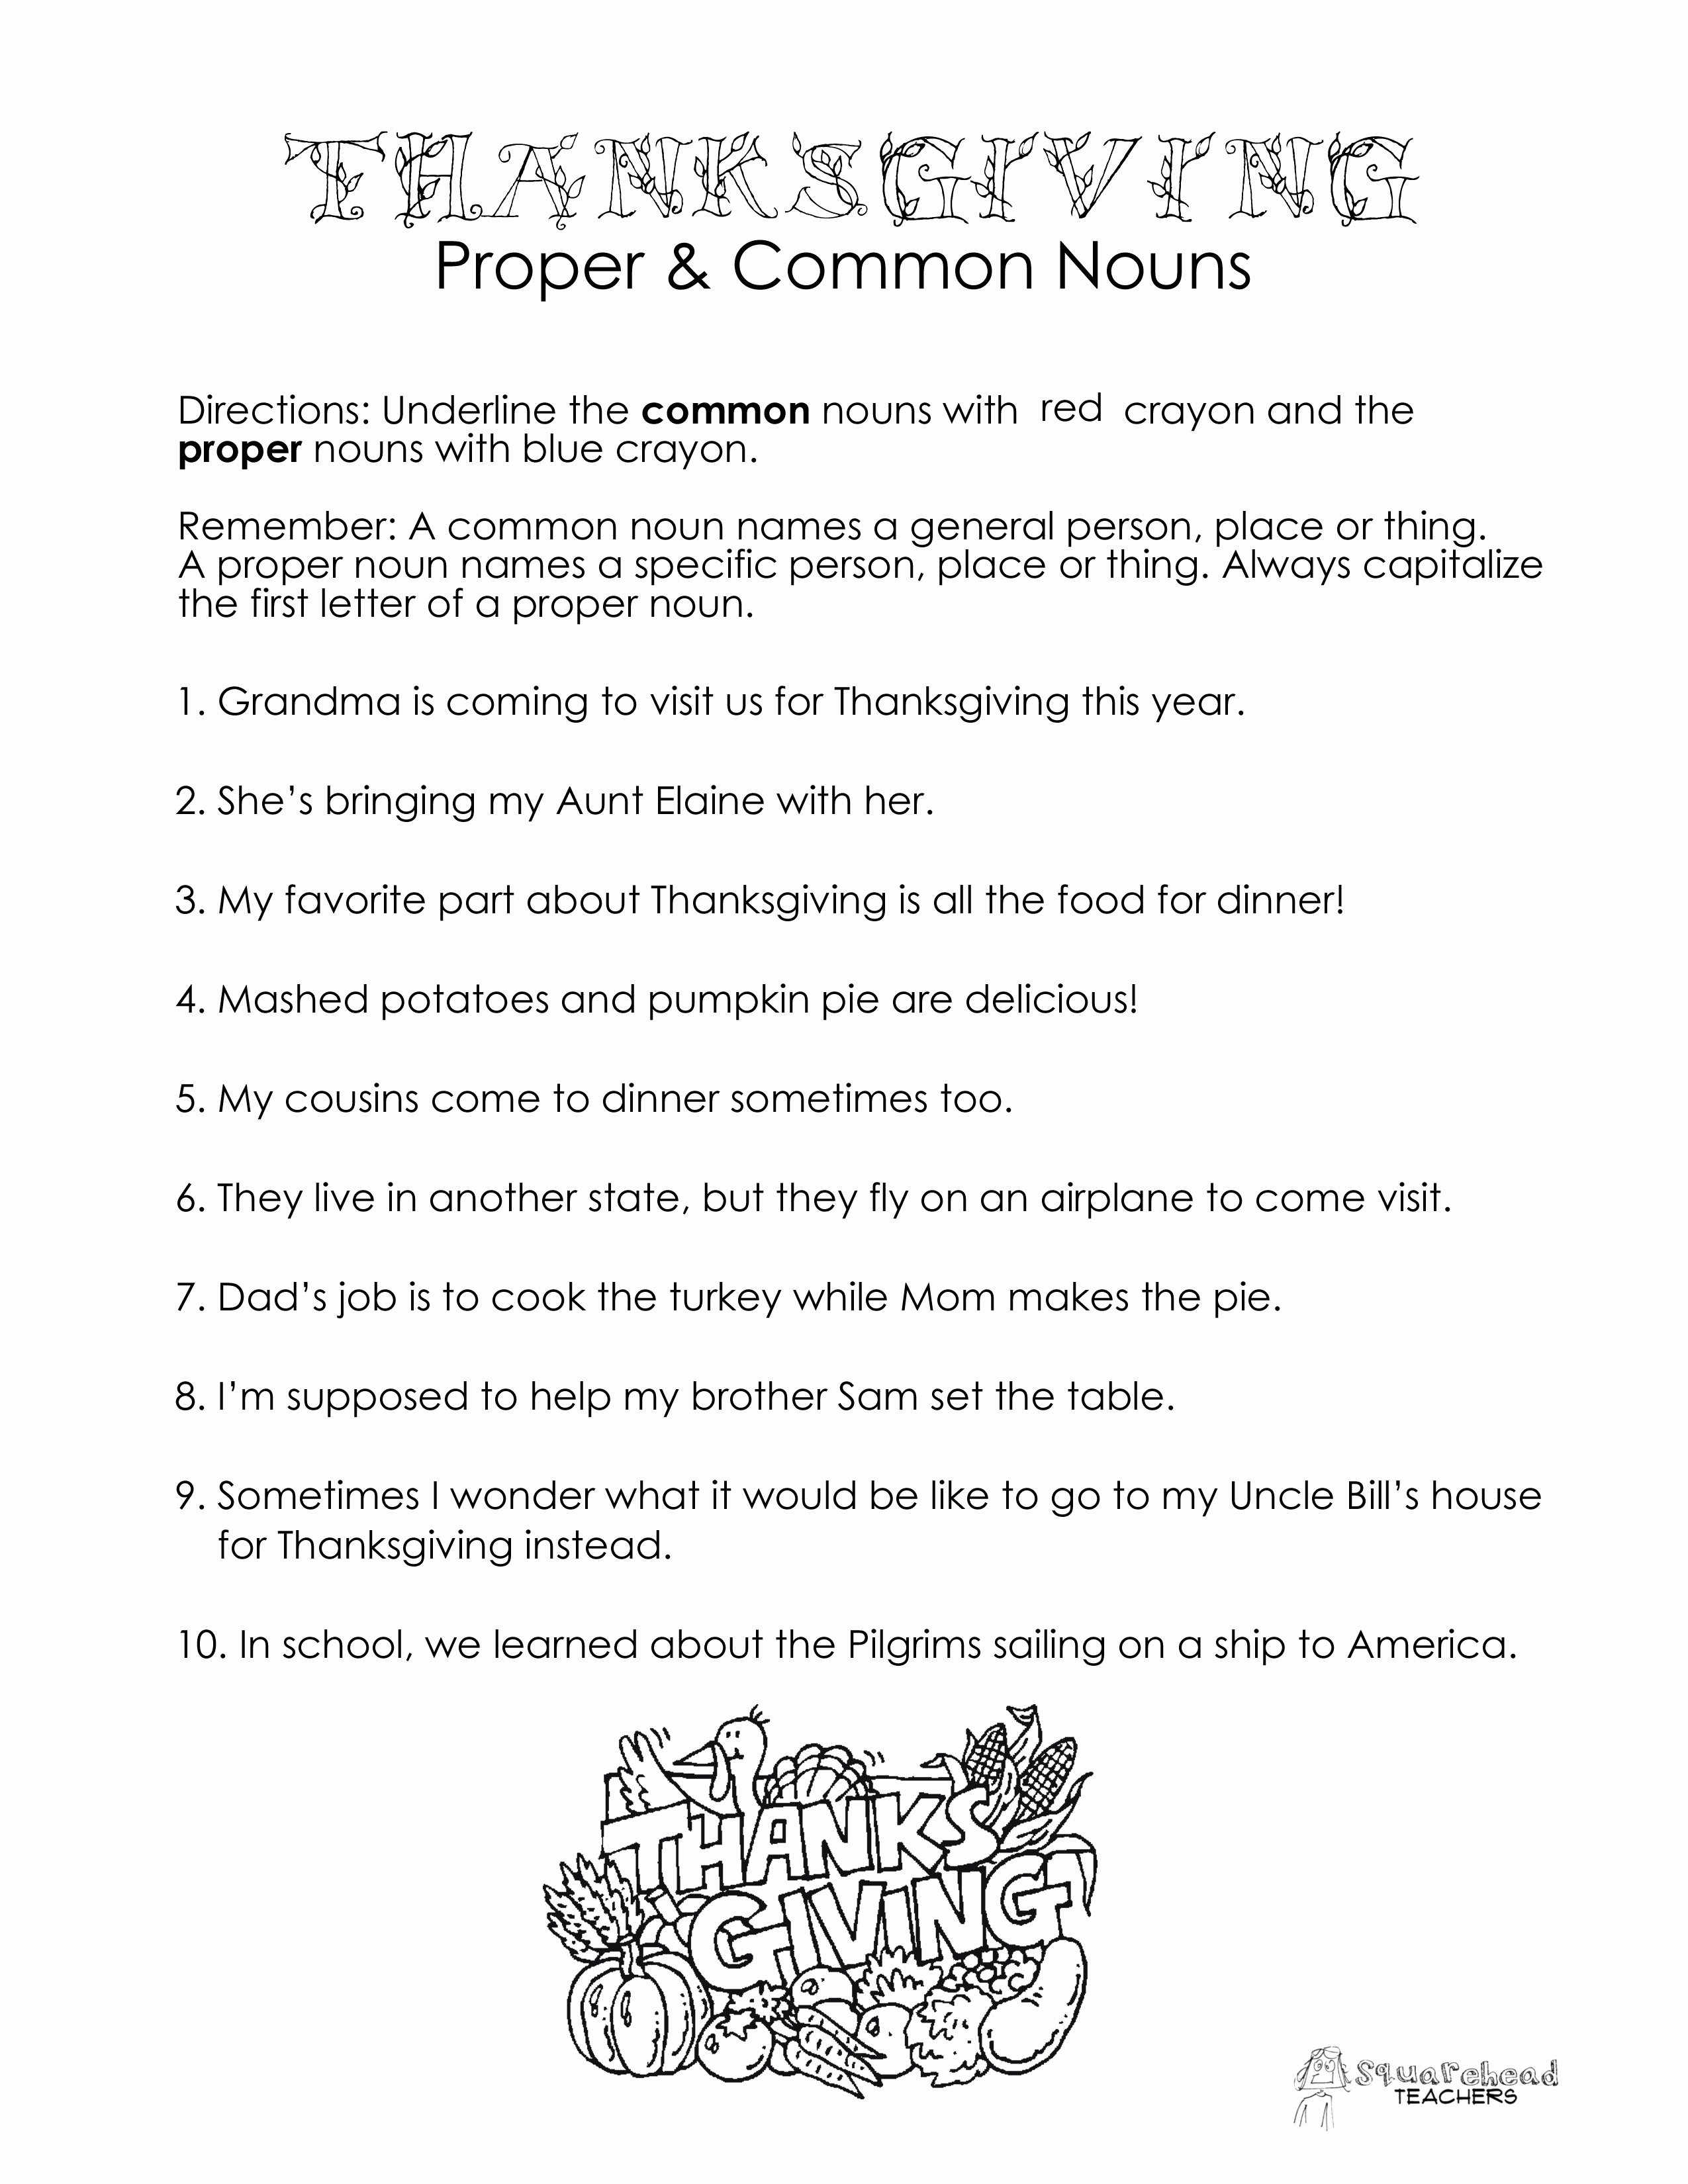 Proper Nouns Worksheet 2nd Grade Luxury Thanksgiving Mon Vs Proper Nouns Worksheet